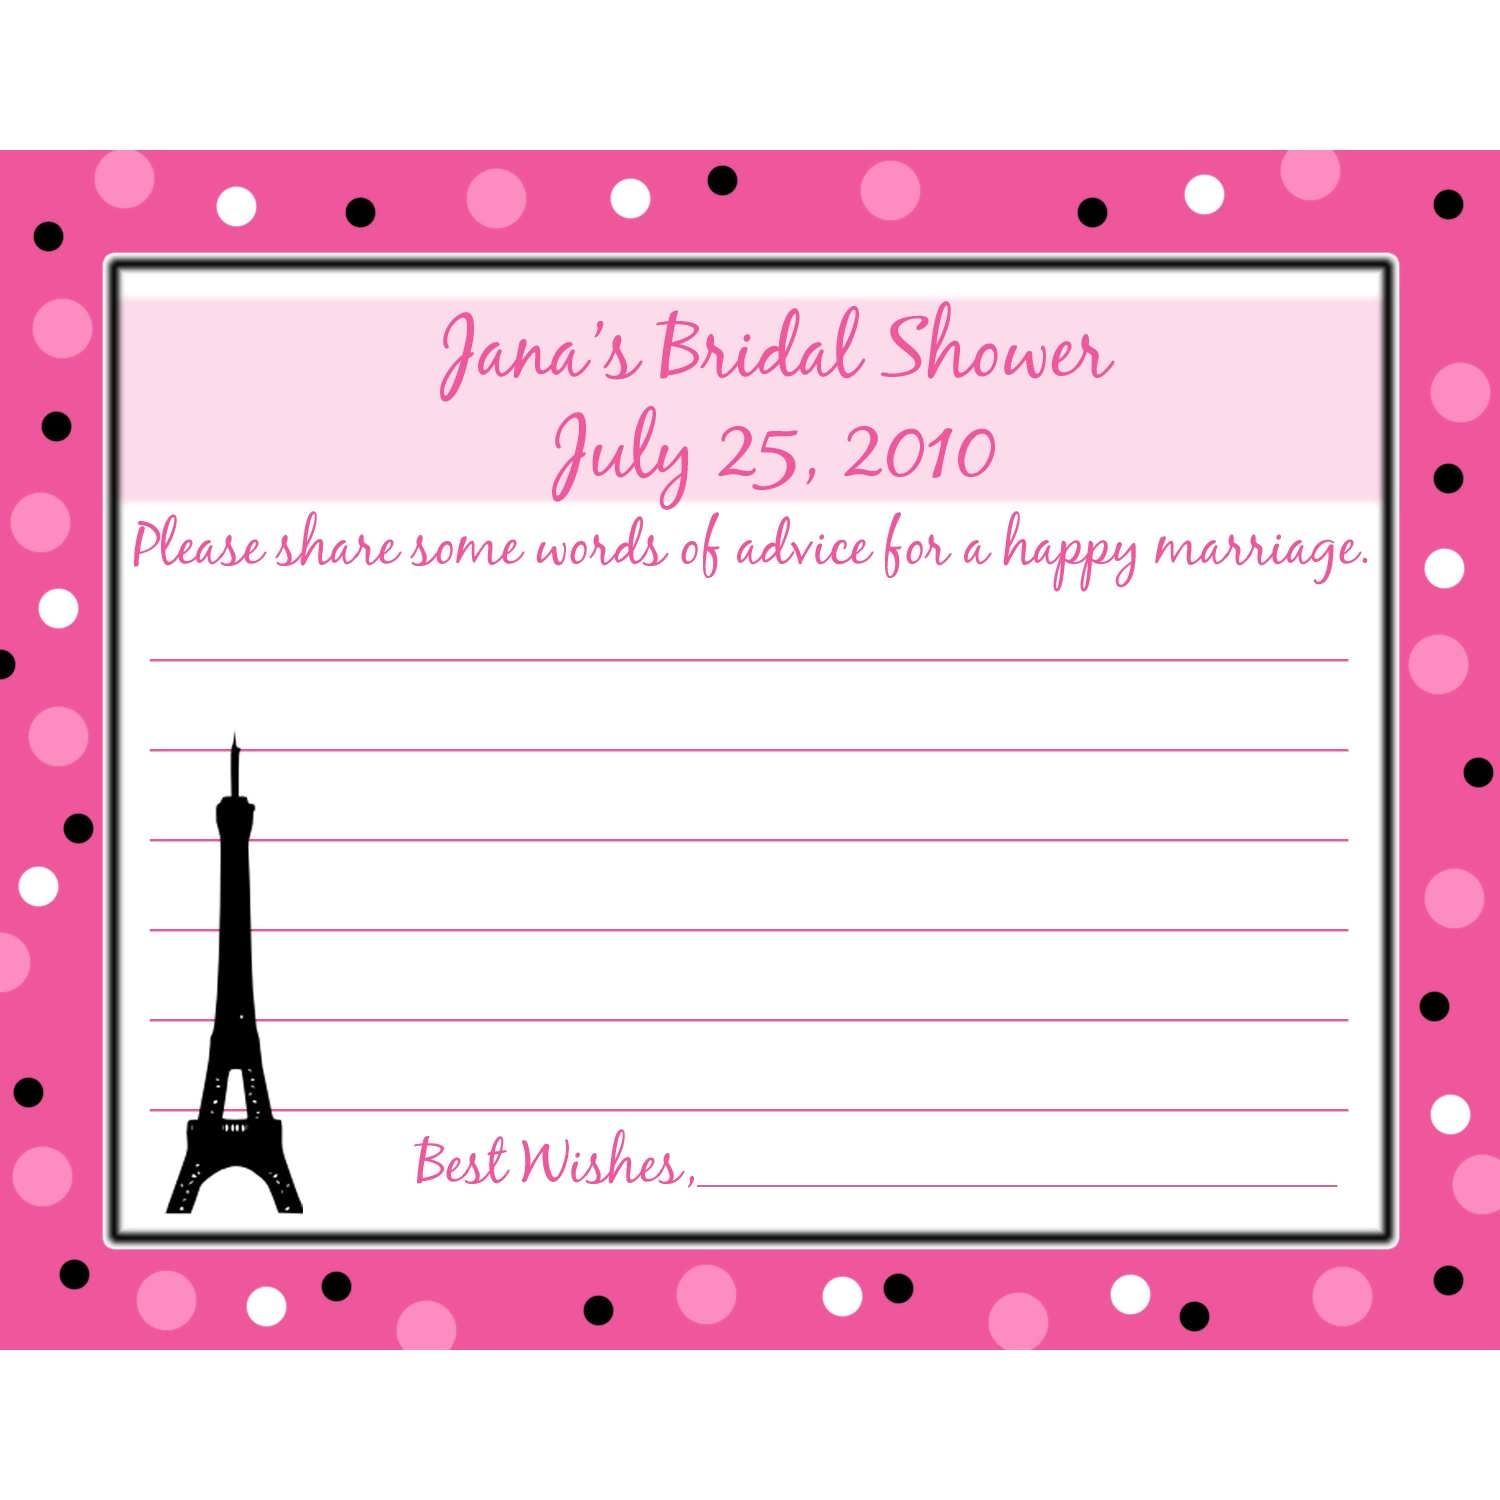 Bridal Shower Wedding Advice Cards #bridal #shower #wedding #advice ...